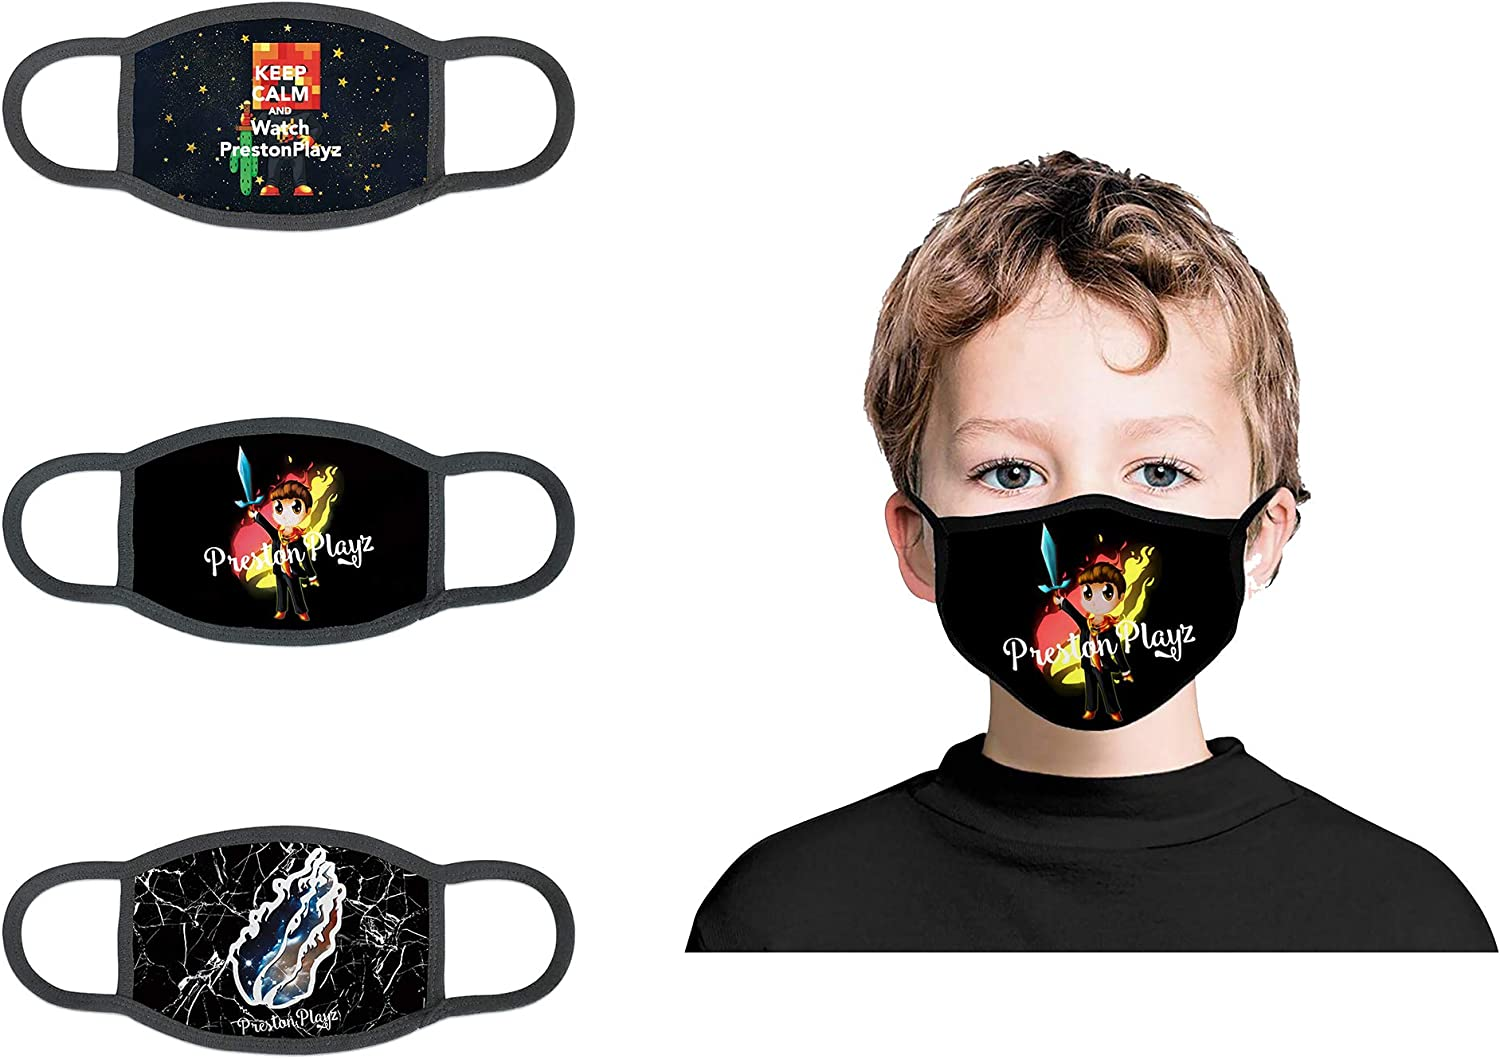 AIYIZHU Pre_Ston Playz Mask Fire Flame 3 Pcs Mouth Cover with Filter Pocket Reusable Washable Face Balaclava for Boys Girls Kids (Preston-Plays5)